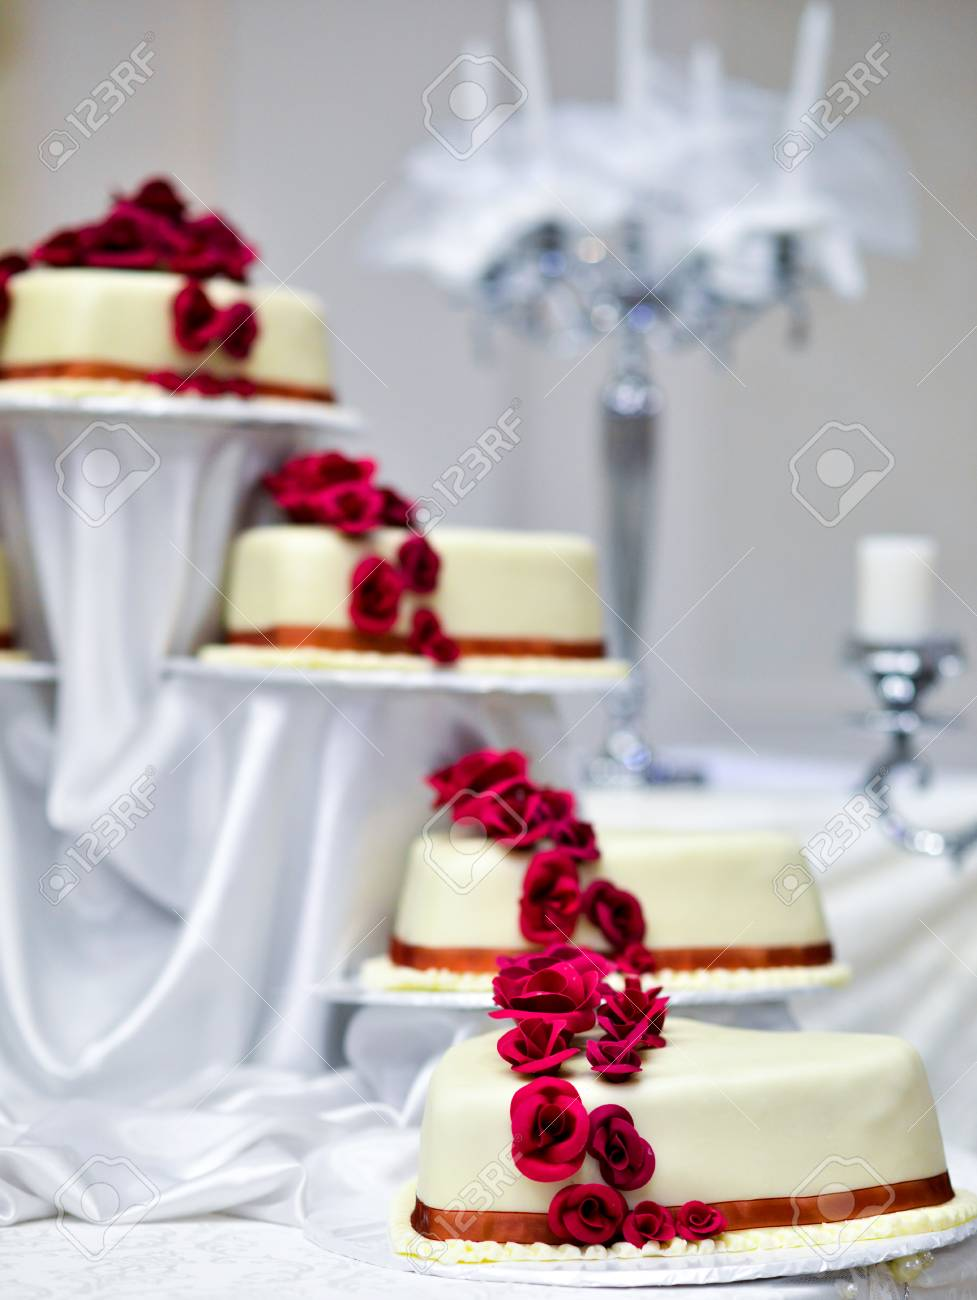 Picture Of A White Wedding Cake With Red Roses Stock Photo, Picture ...